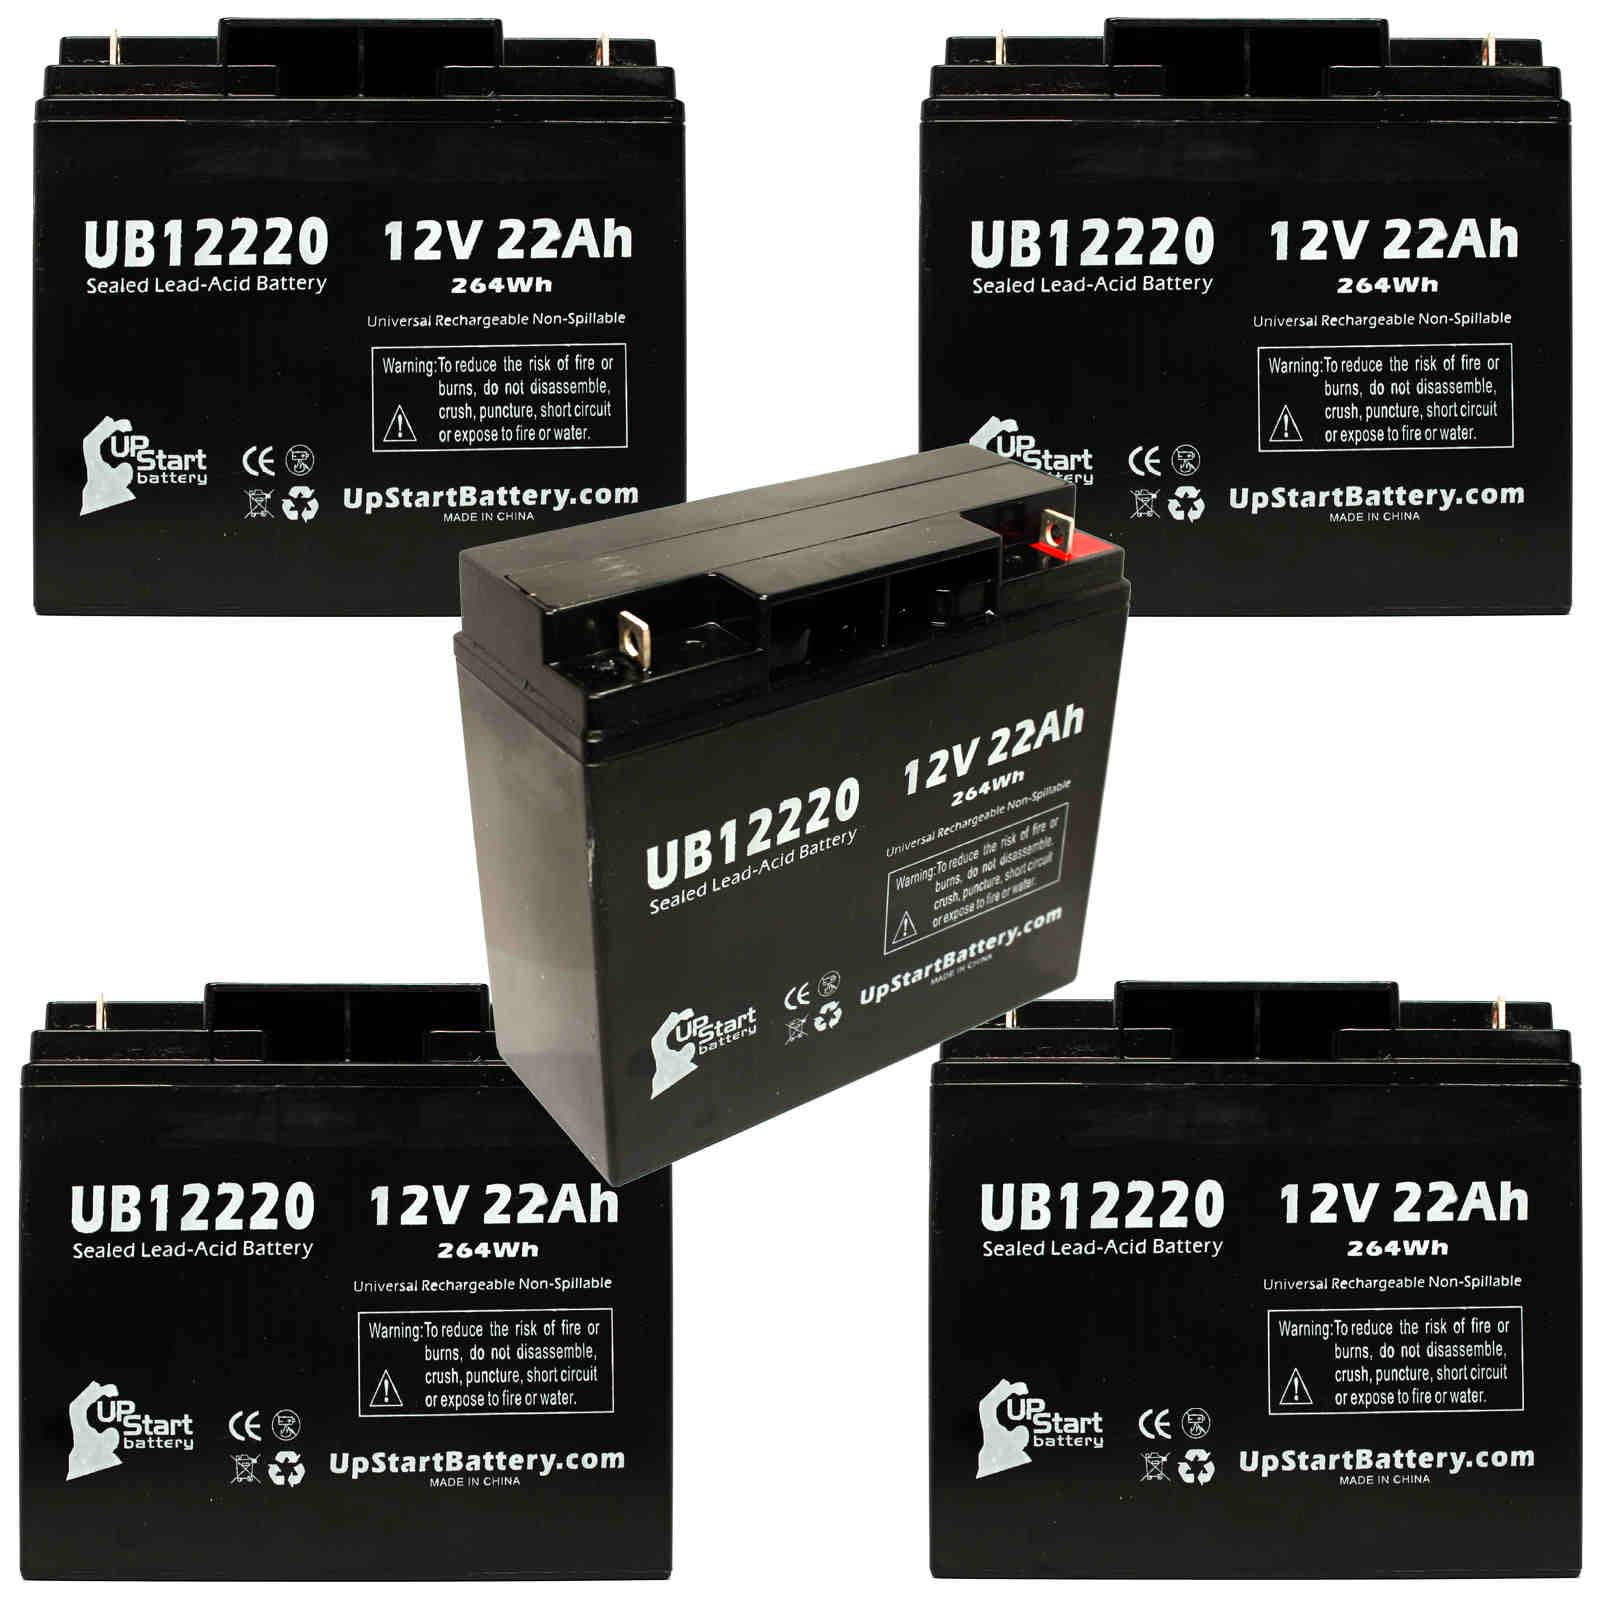 UpStart Battery 5x Pack - ACCESS BATTERY SLA12180 Battery - Replacement UB12220 Universal Sealed Lead Acid Battery (12V, 22Ah, T4 Terminal,) at Sears.com